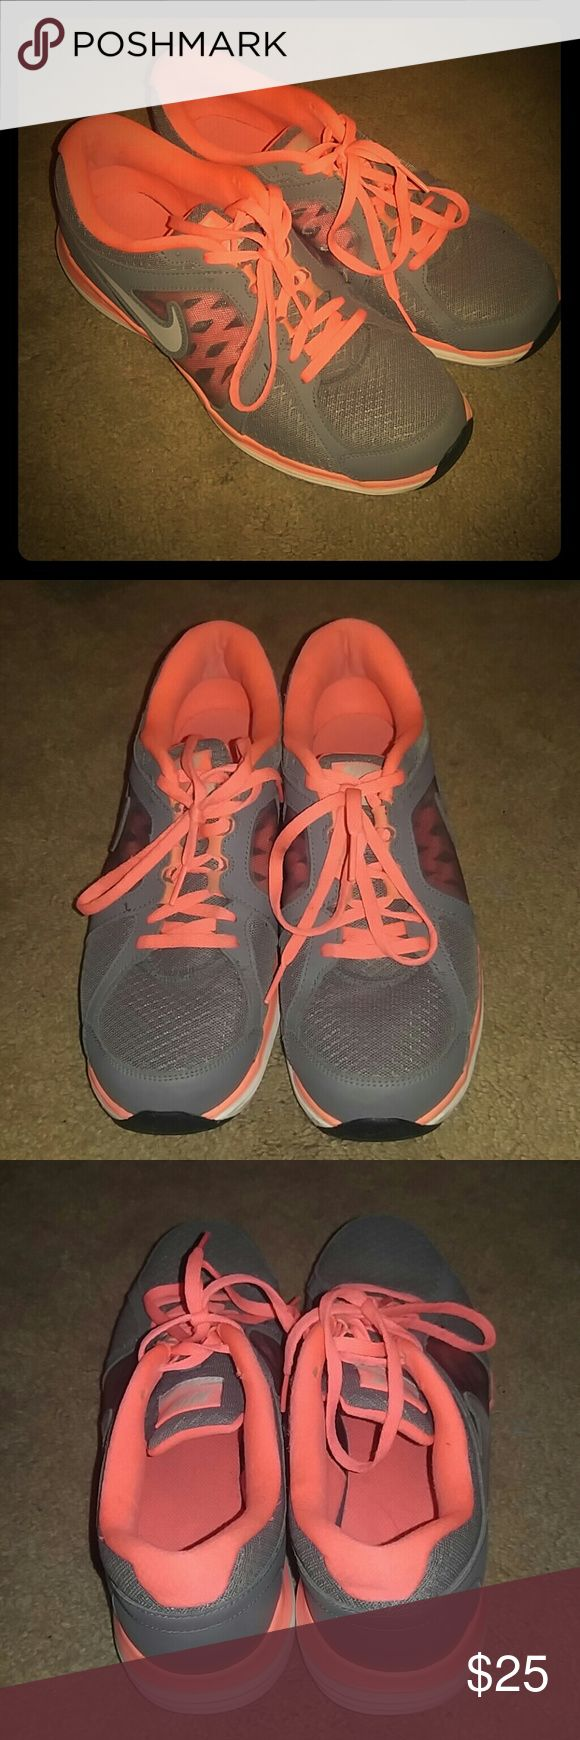 Nike Dual Fusion Athletic Shoes These are a re-Posh because they are the wrong size. Pristine condition. Like new! Neon coral/orange and grey in color. Nike Shoes Athletic Shoes